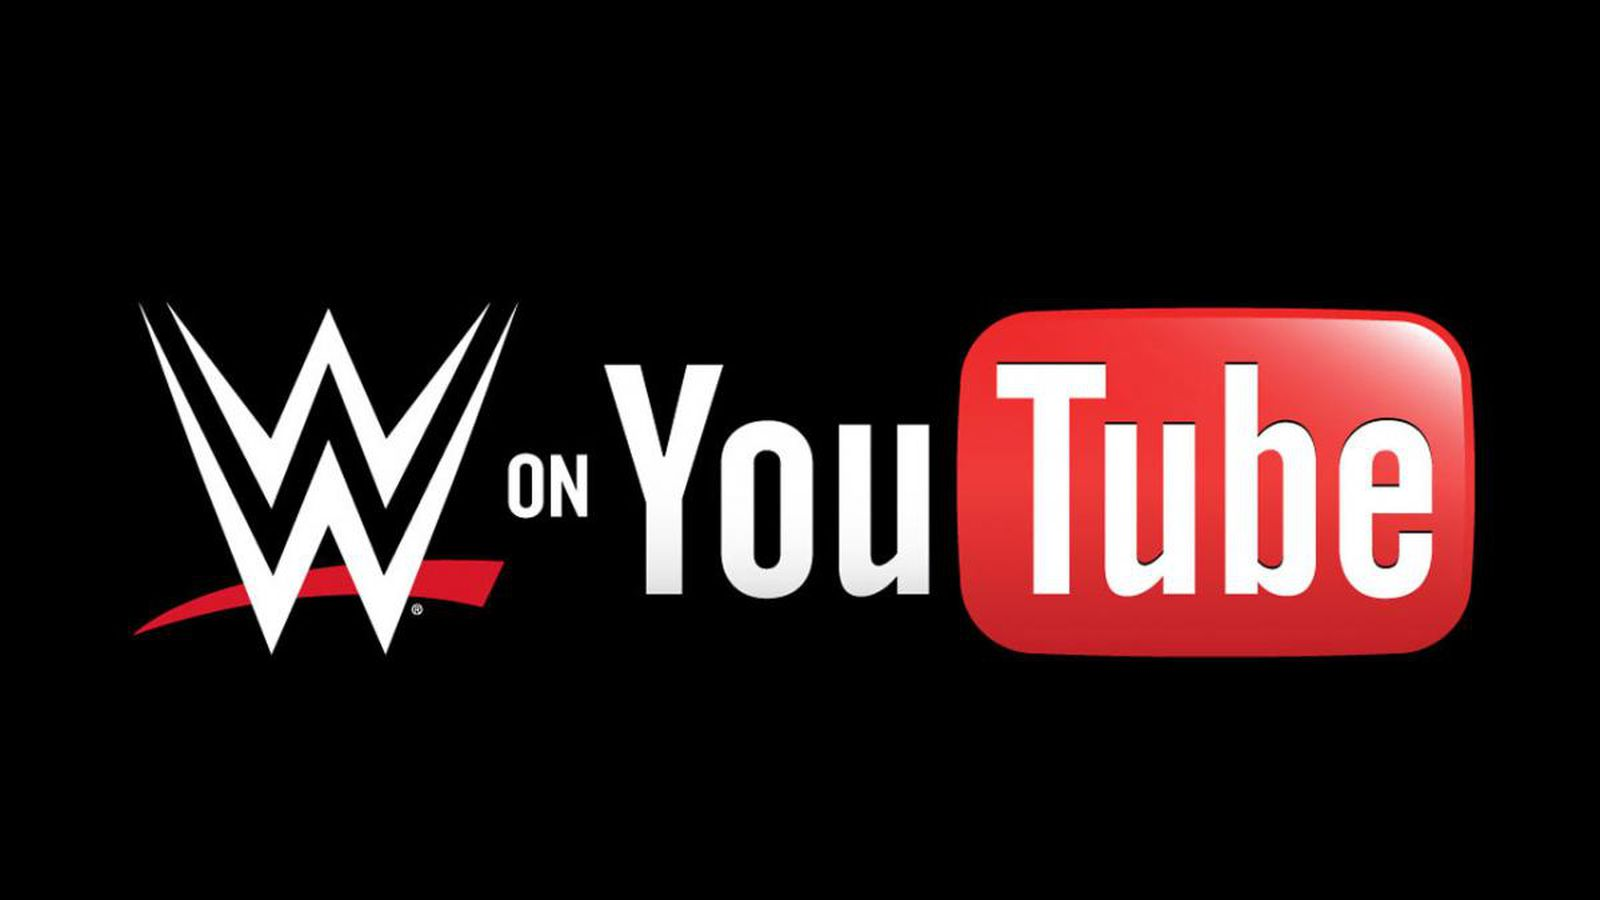 WWE Raw YouTube